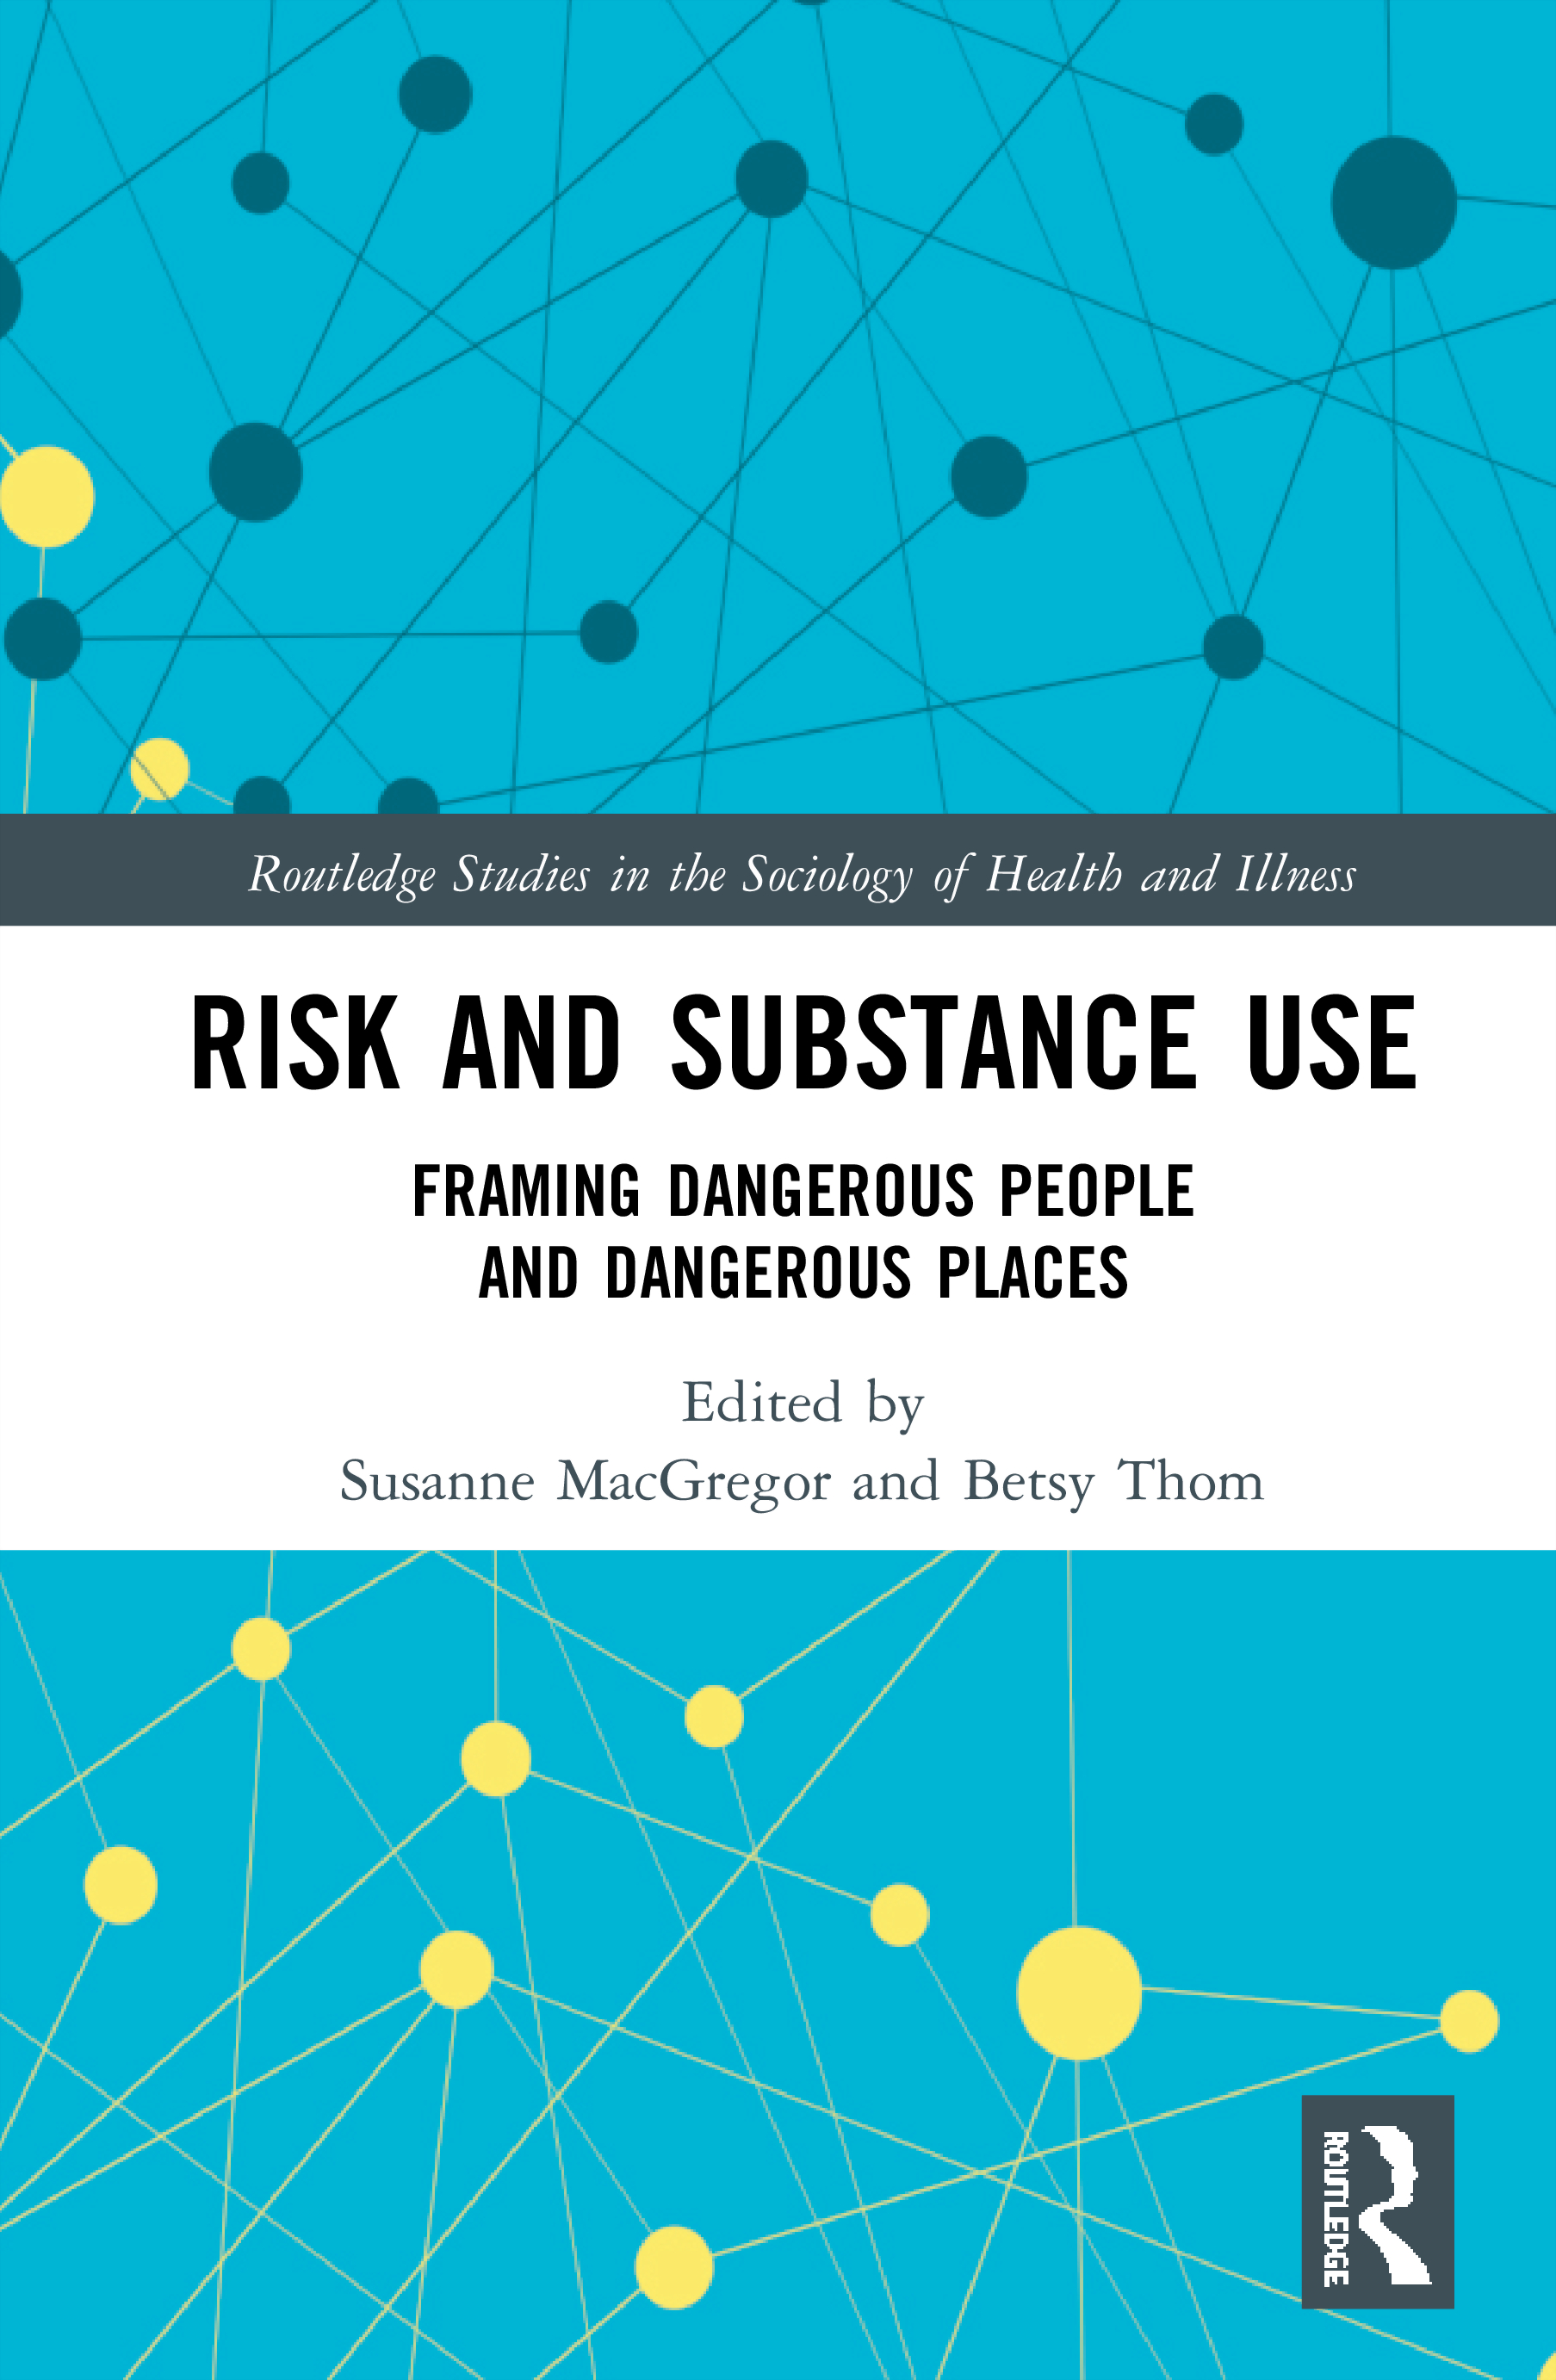 Risk and Substance Use: Framing Dangerous People and Dangerous Places book cover